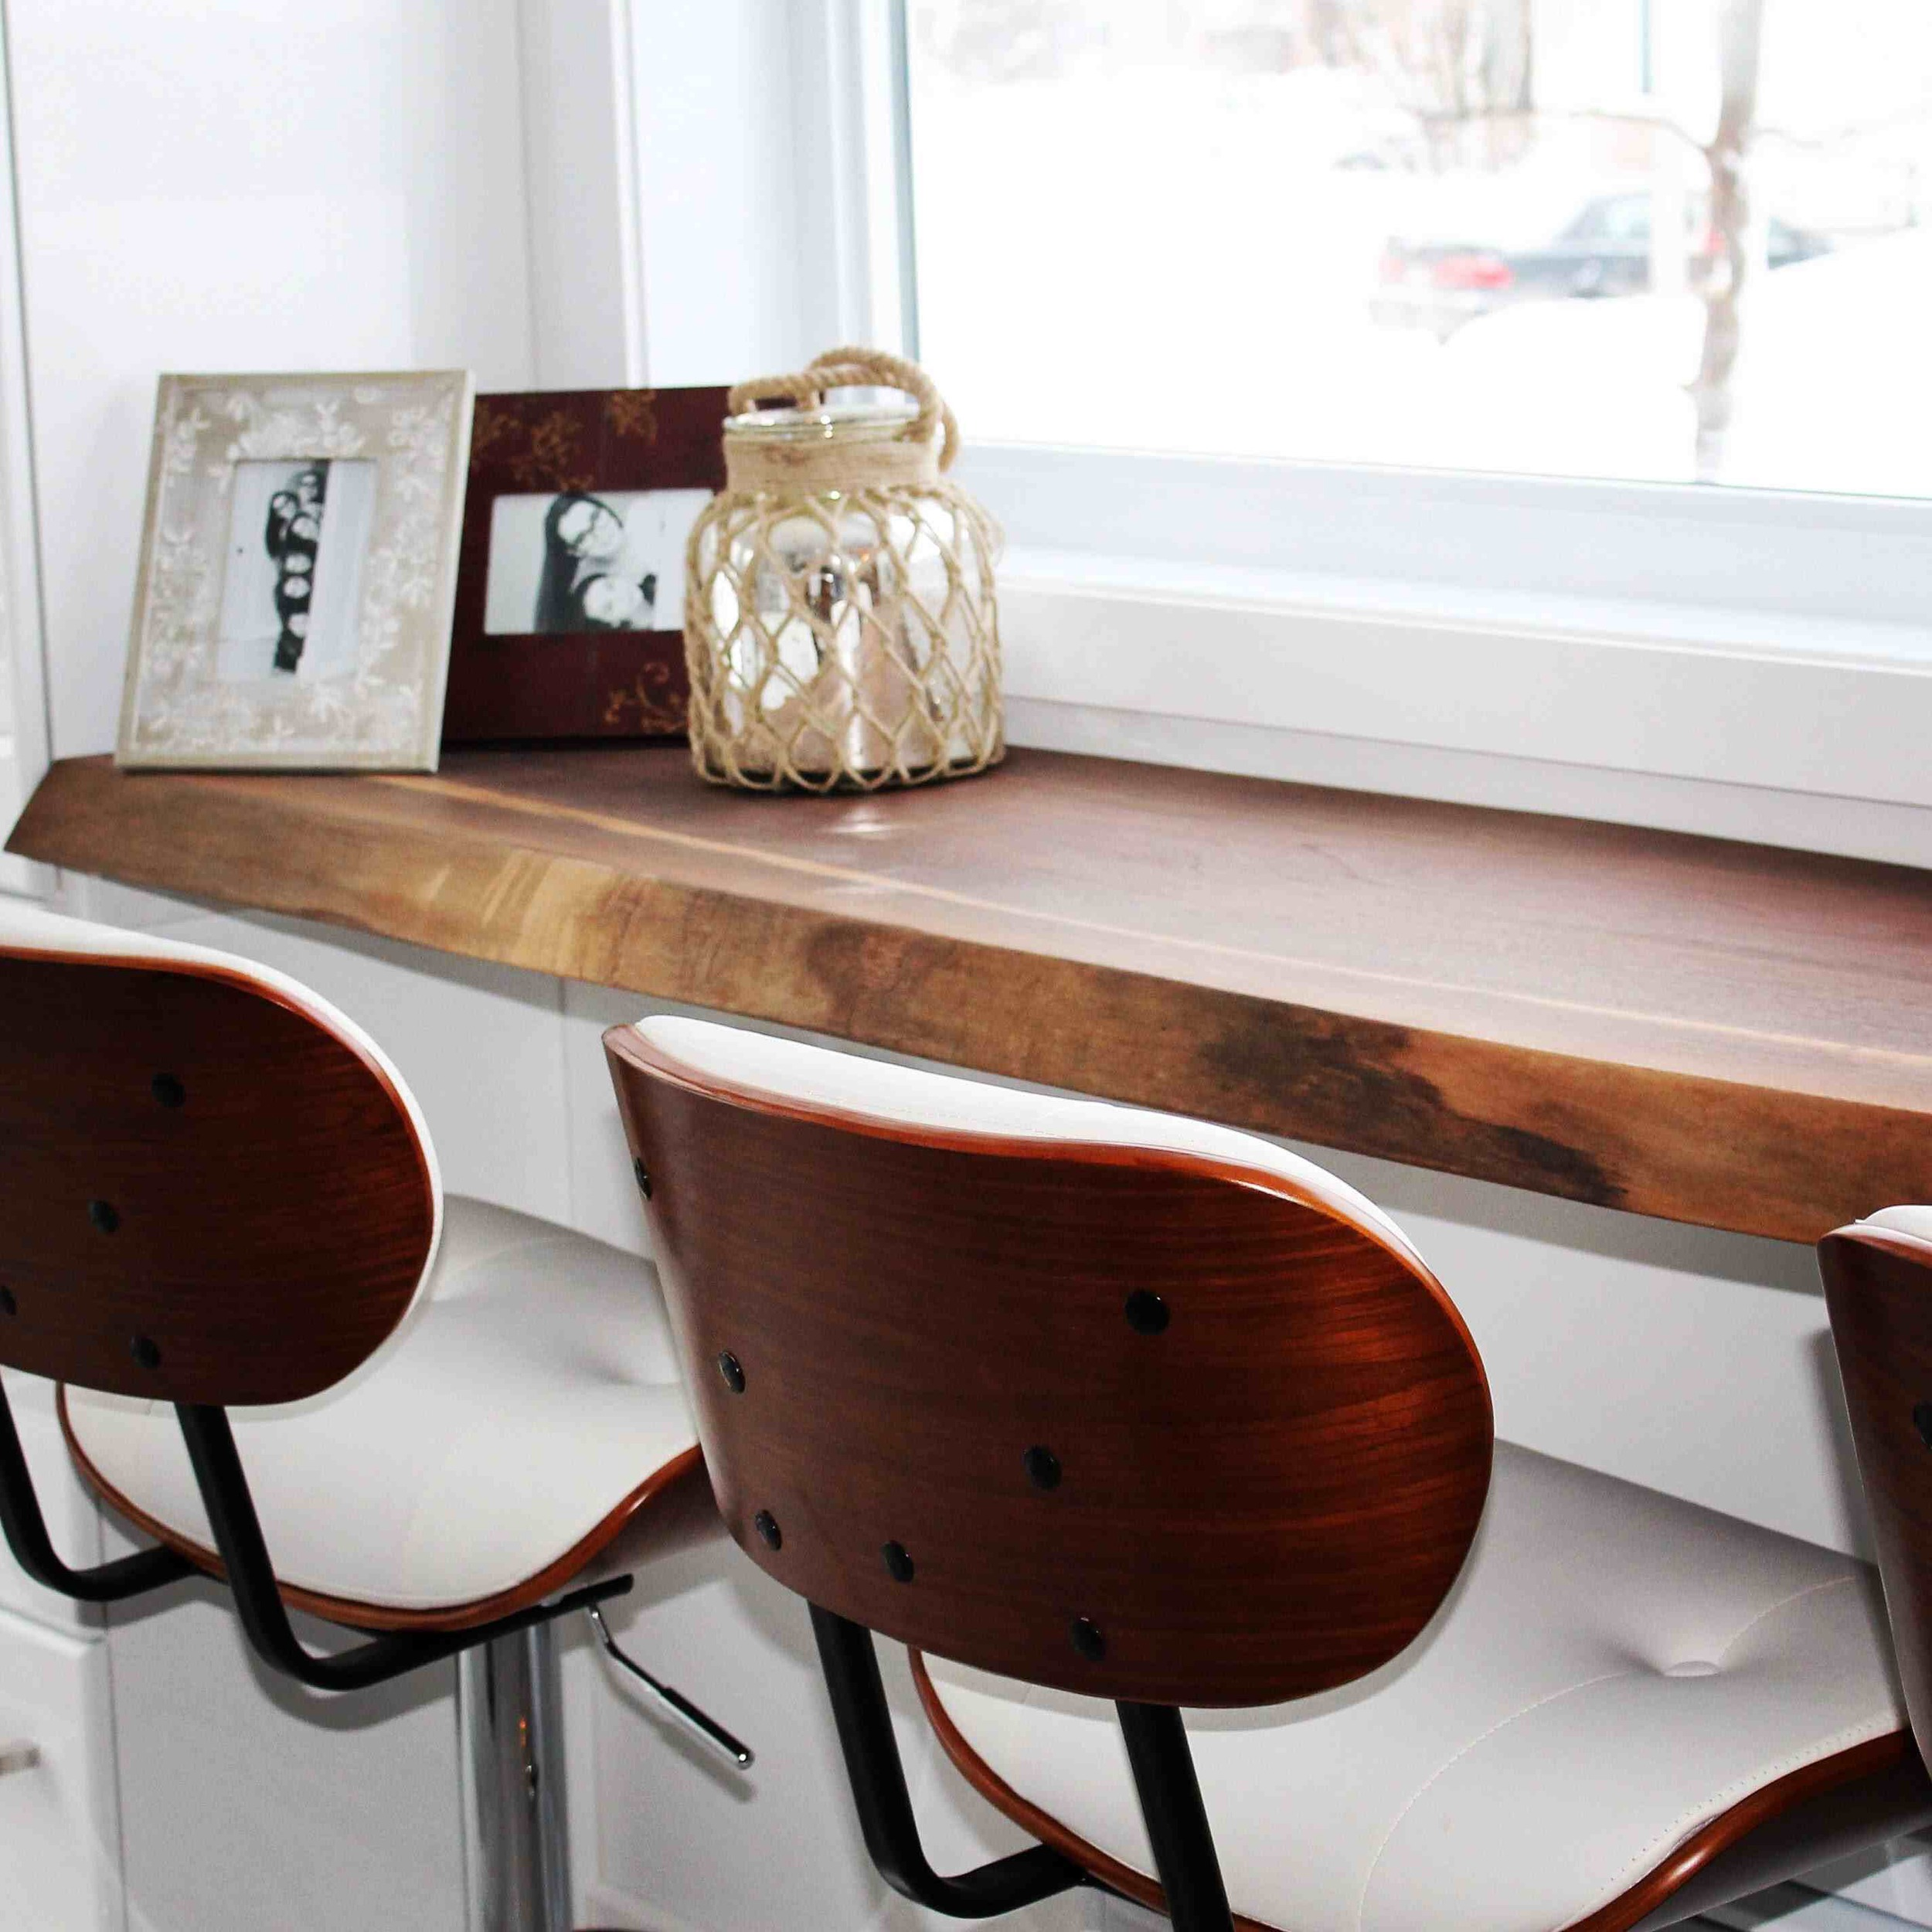 Live edge black walnut countertop